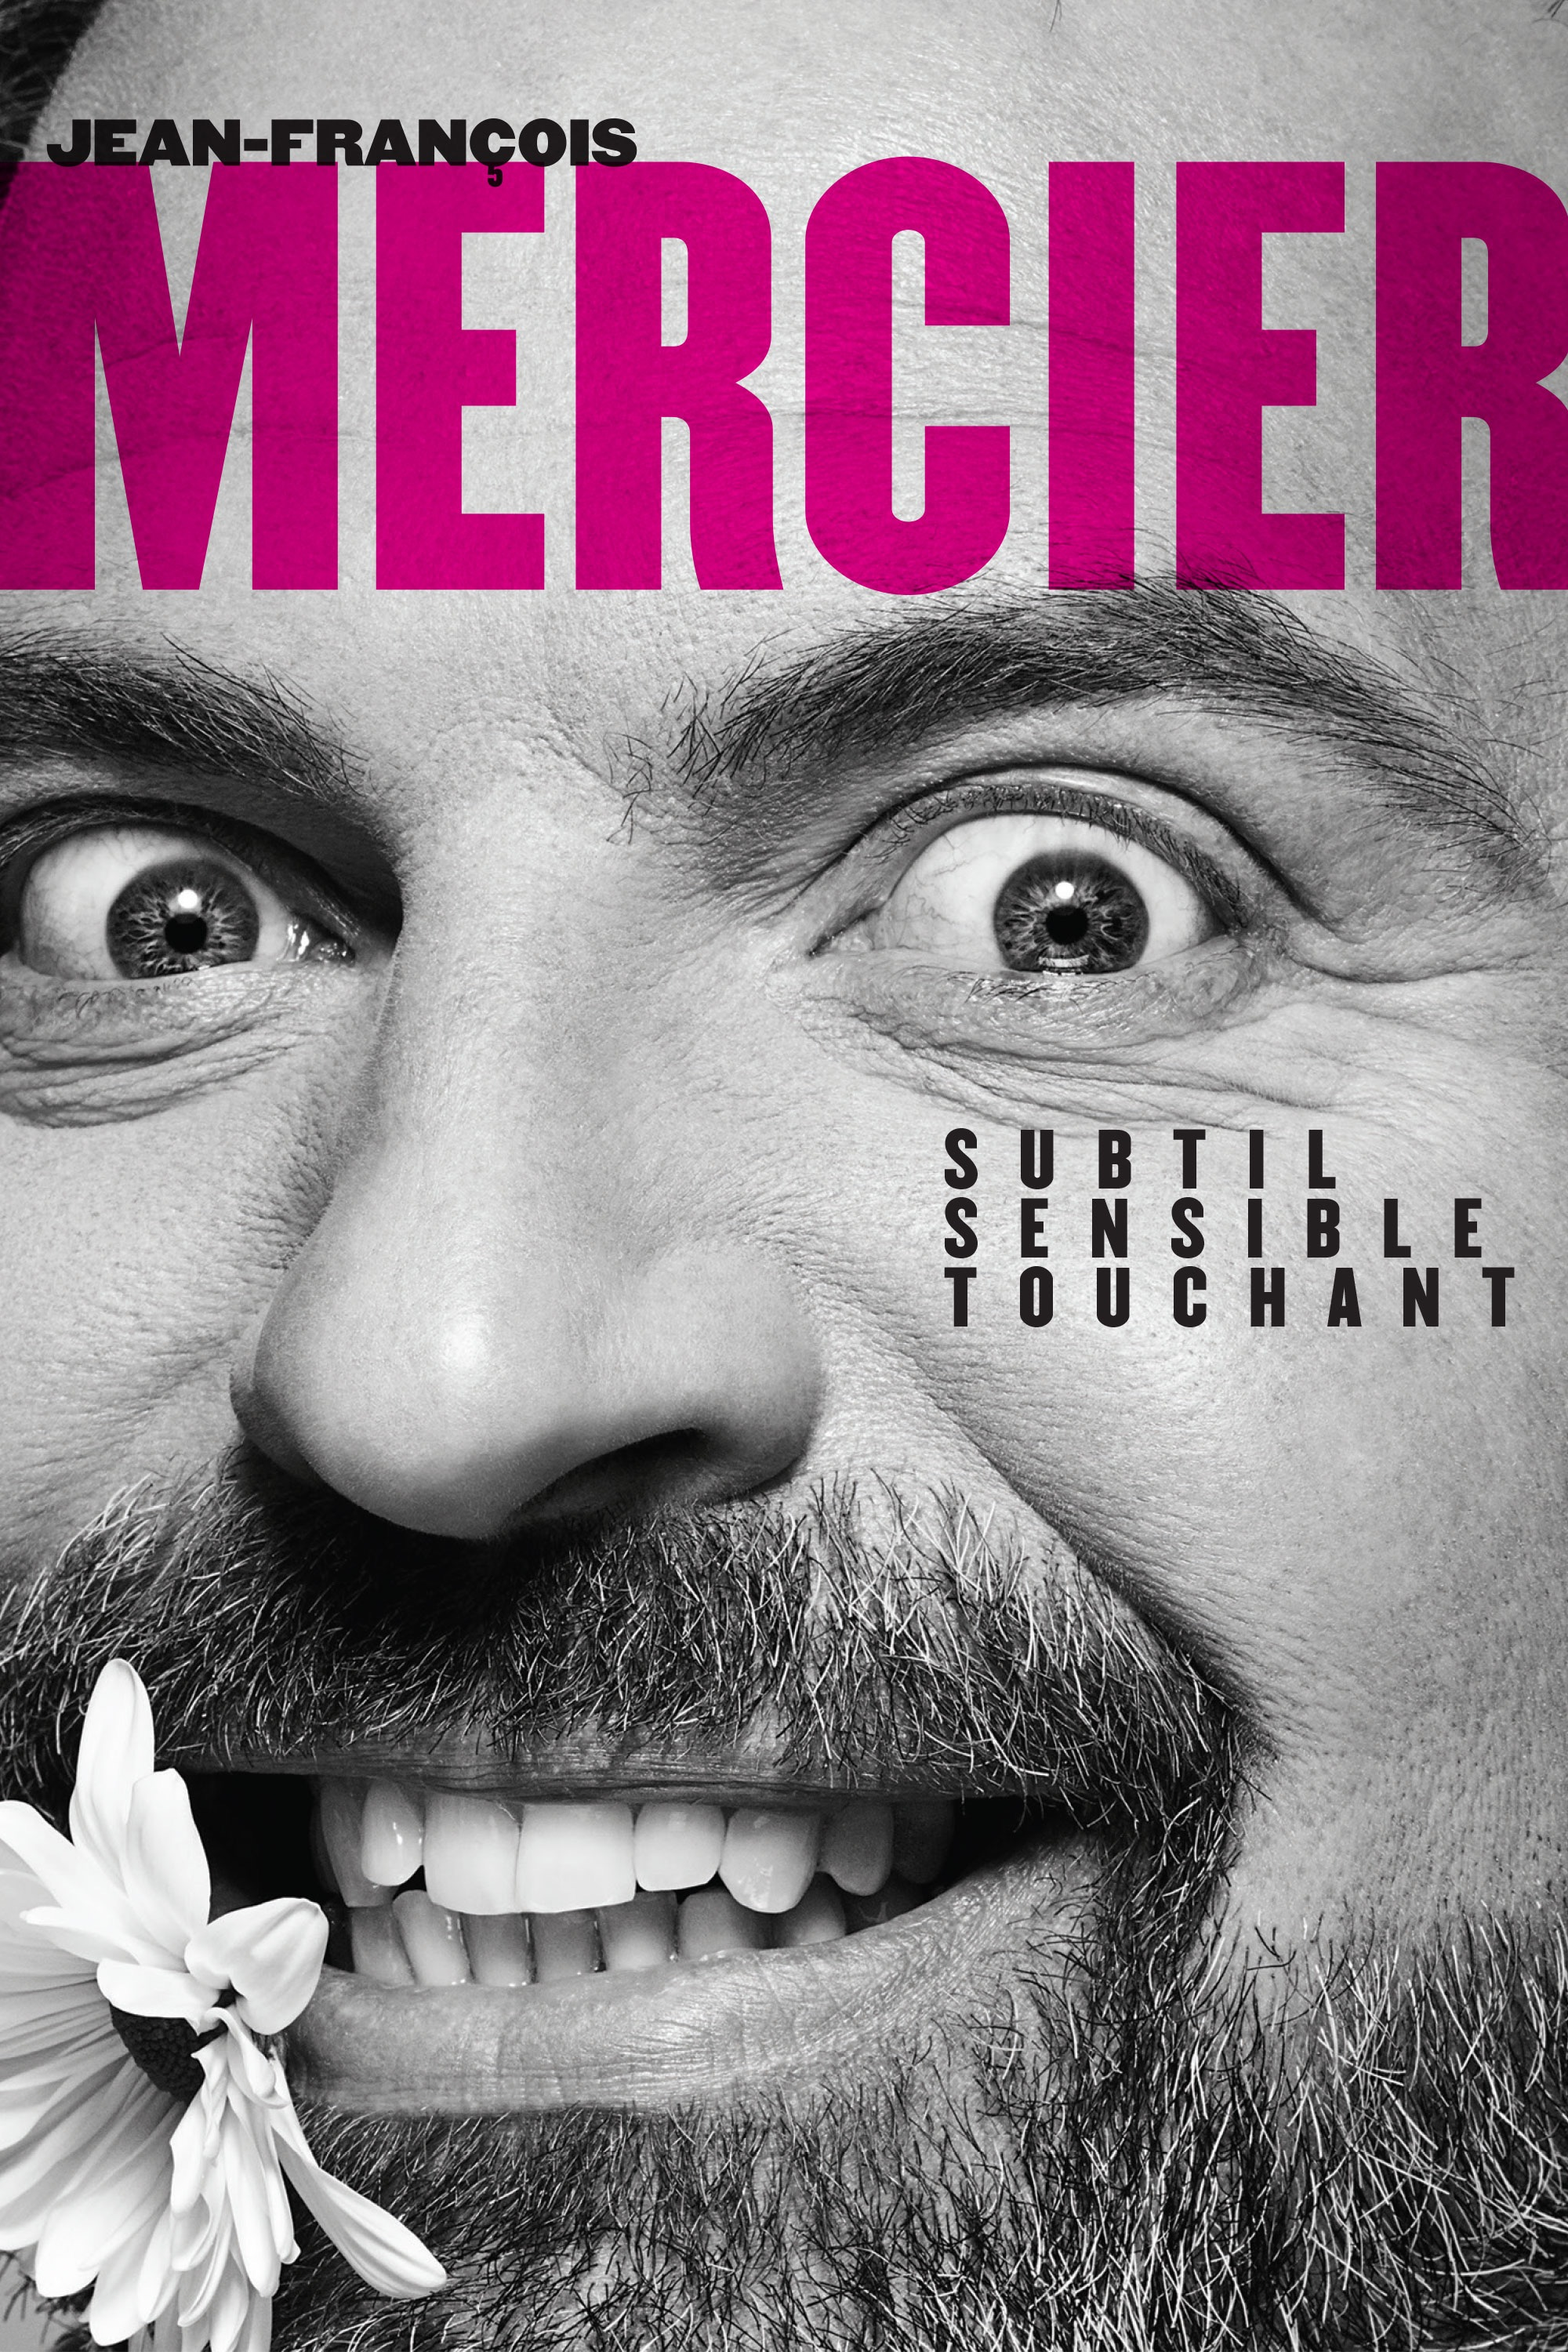 Jean-François Mercier – Subtil, sensible, touchant (DVD)